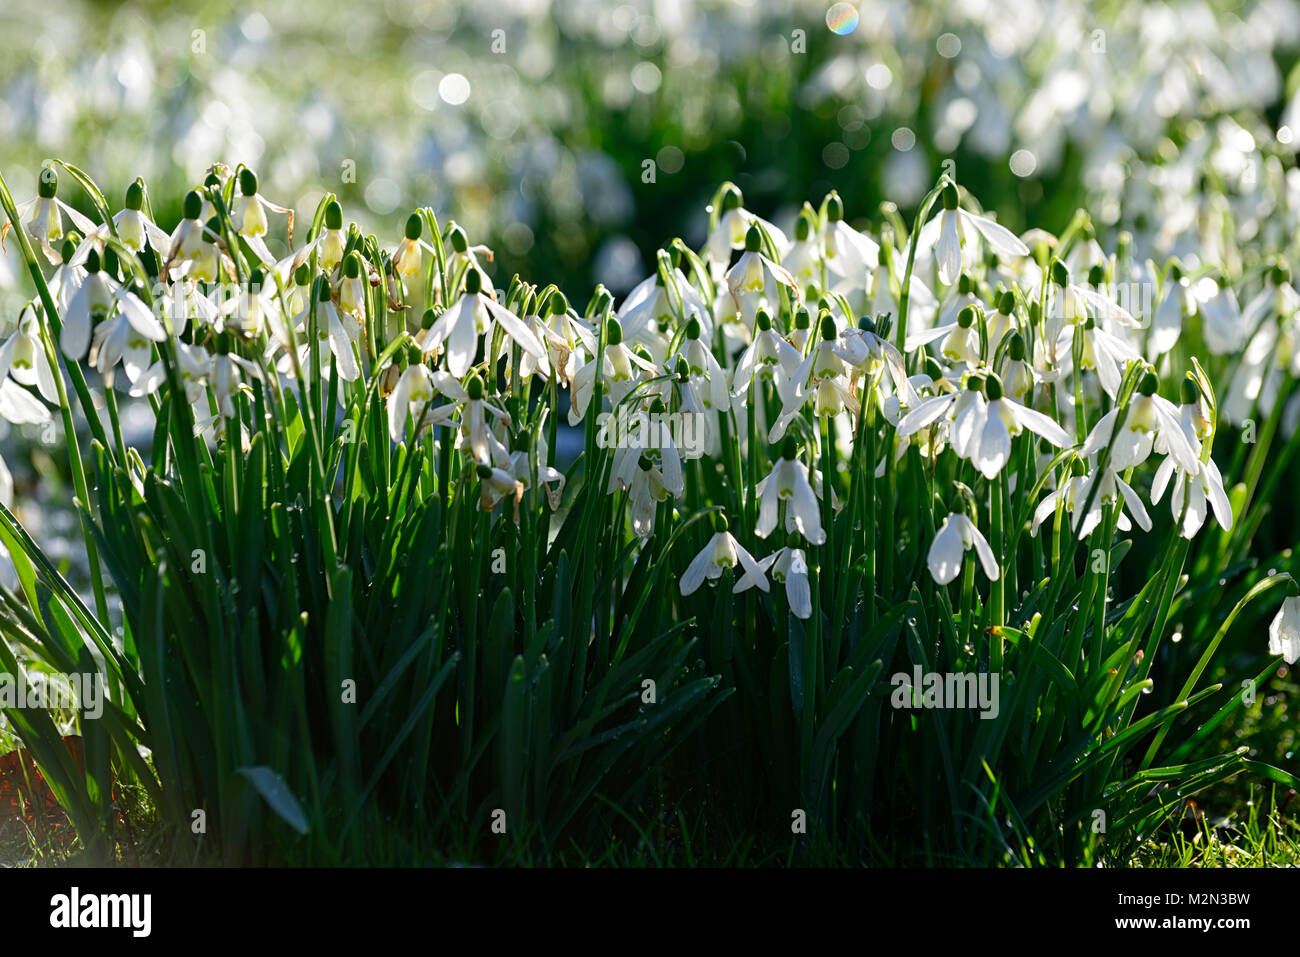 galanthus,snowdrops,snowdrop,carpet,backlit,illuminate,illuminated,stand out,standing out,spring,sun,sunshine,hope,joy,flower,flowers,flowering,RM - Stock Image